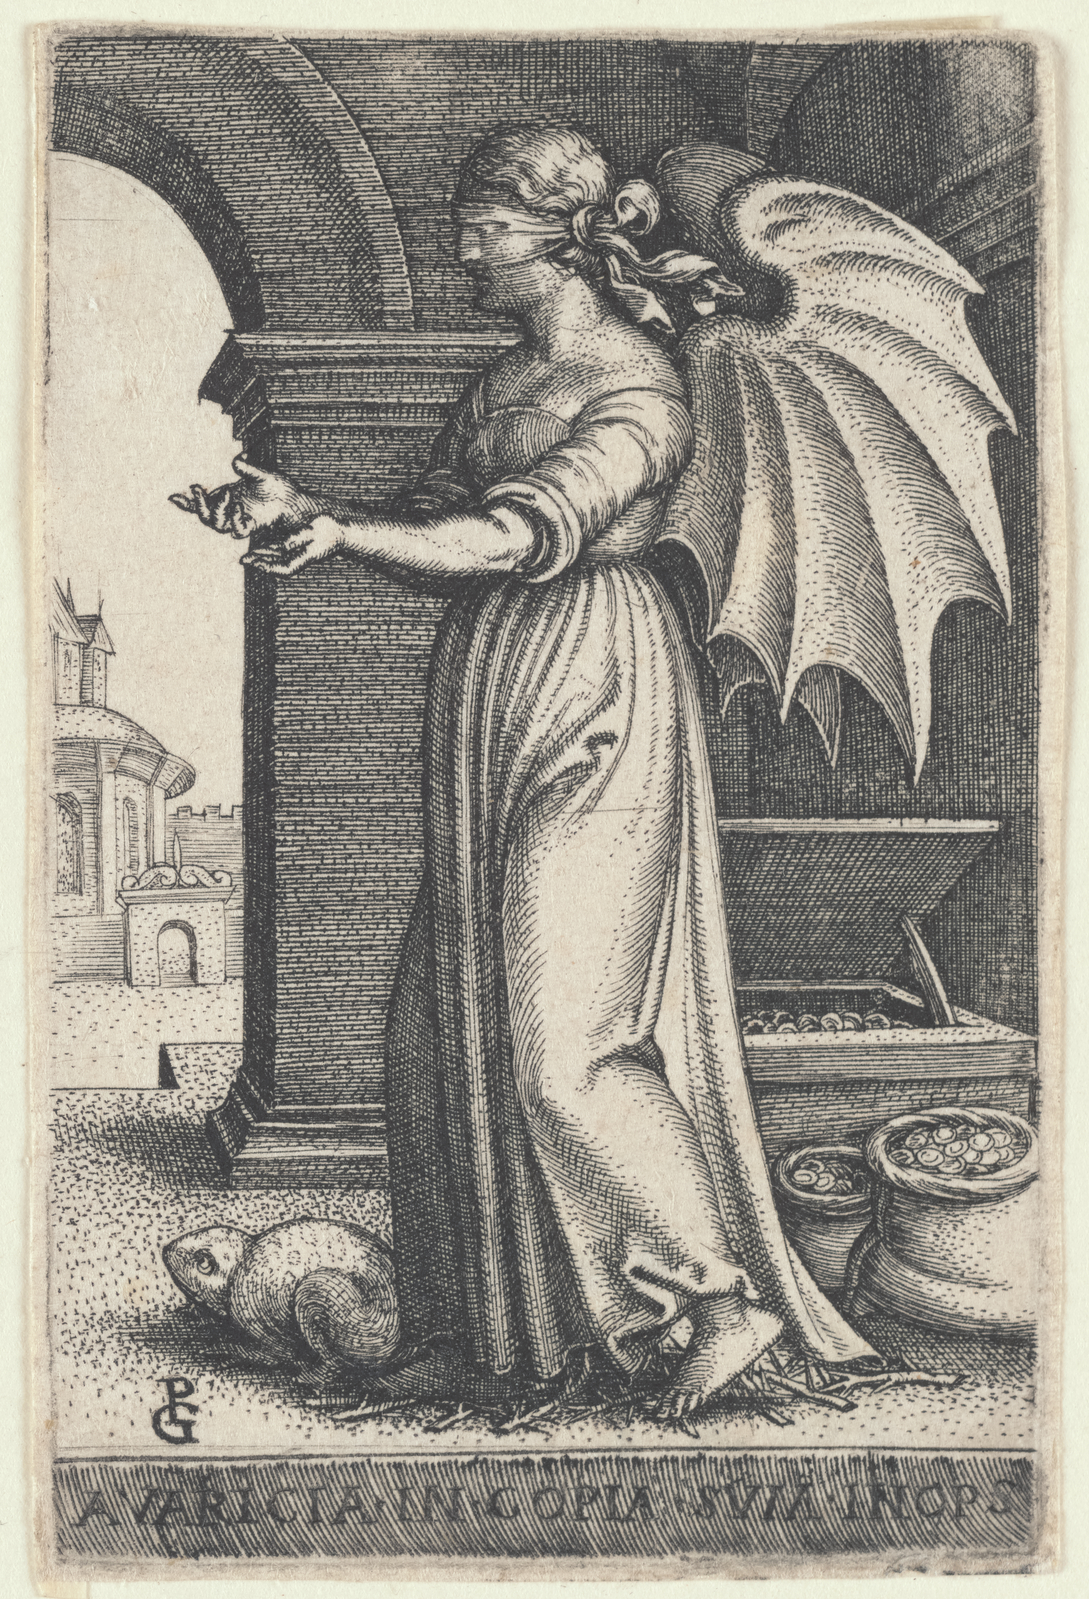 The Miriam and Ira D. Wallach Division of Art, Prints and Photographs: Print Collection, The New York Public Library. (1500 - 1550).  Avaritia [Avarice]  Retrieved from http://digitalcollections.nypl.org/items/2b64b5b0-504e-0135-1f89-0718dba57193